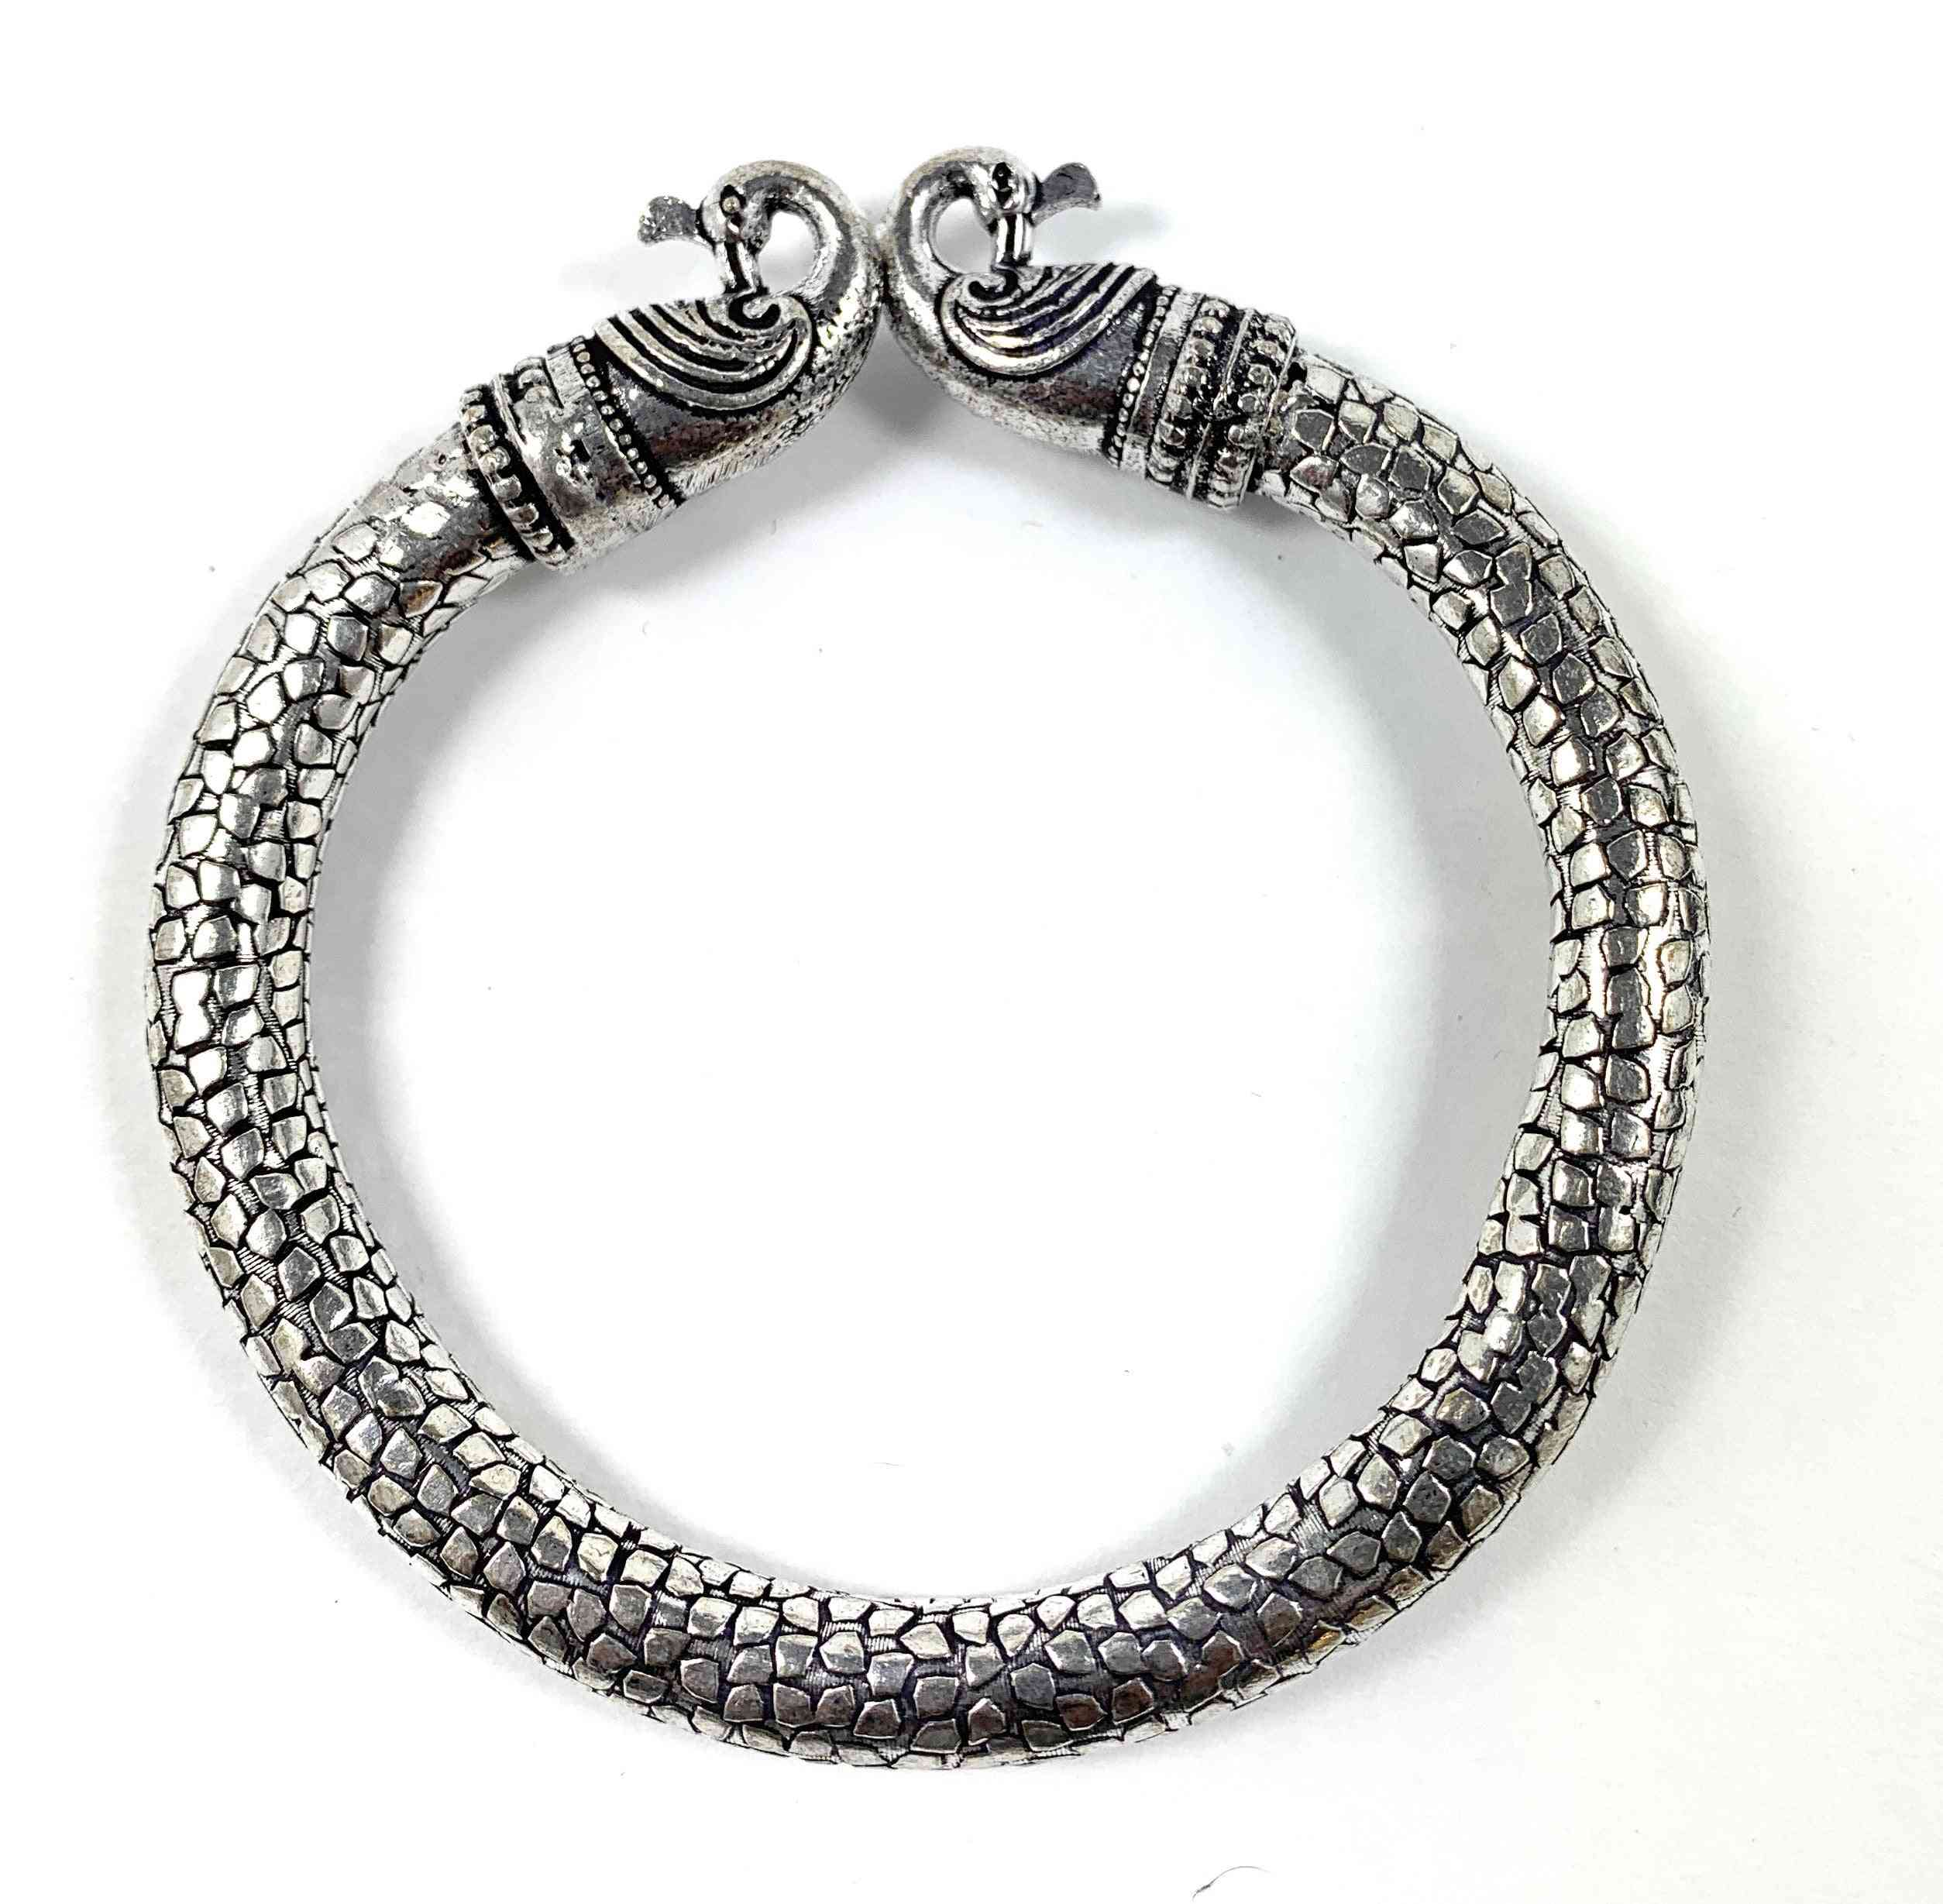 Antique Norse Bracelet With Peacock Heads & Snake